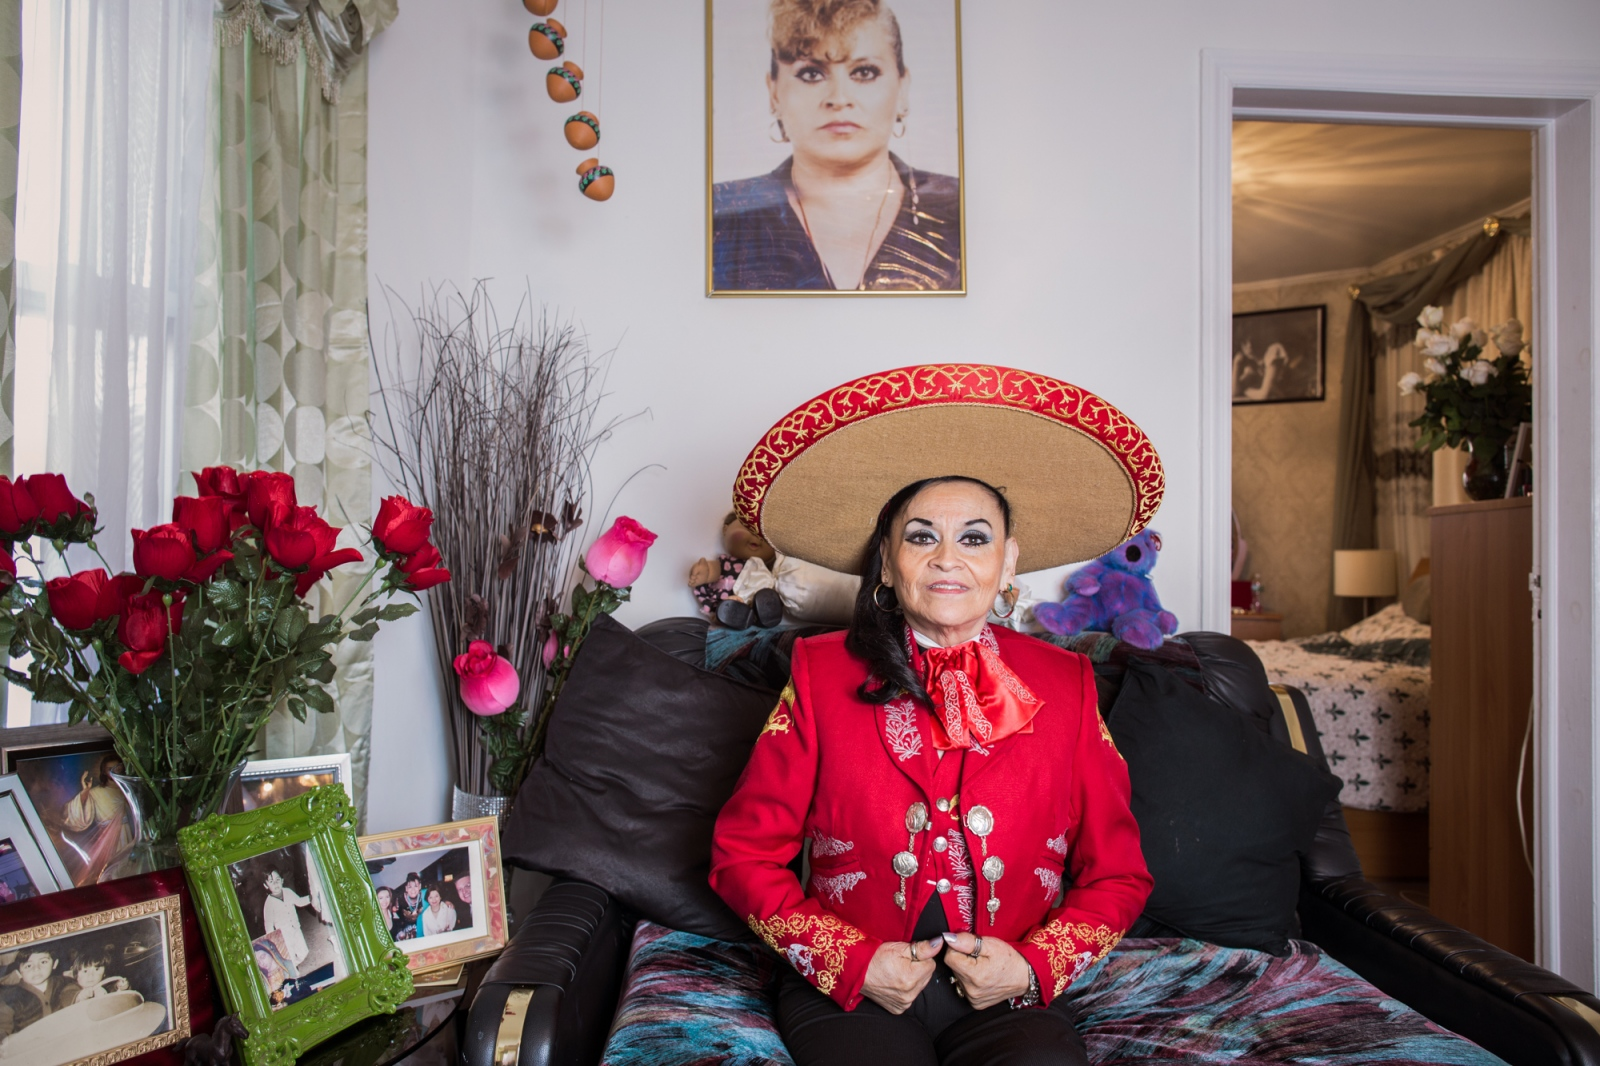 Yolanda Leticia , is a Mariachi singer from Veracruz, México and coordinator and teacher of the Mariachi Academy for children in New York. In her house in Jamaica, Queens she has a studio where she rehearses her singing. Yolanda, is considered the Queen of Mariachi in New York, appearing in various scenarios around of the United States singing the vernacular music of Mexico.